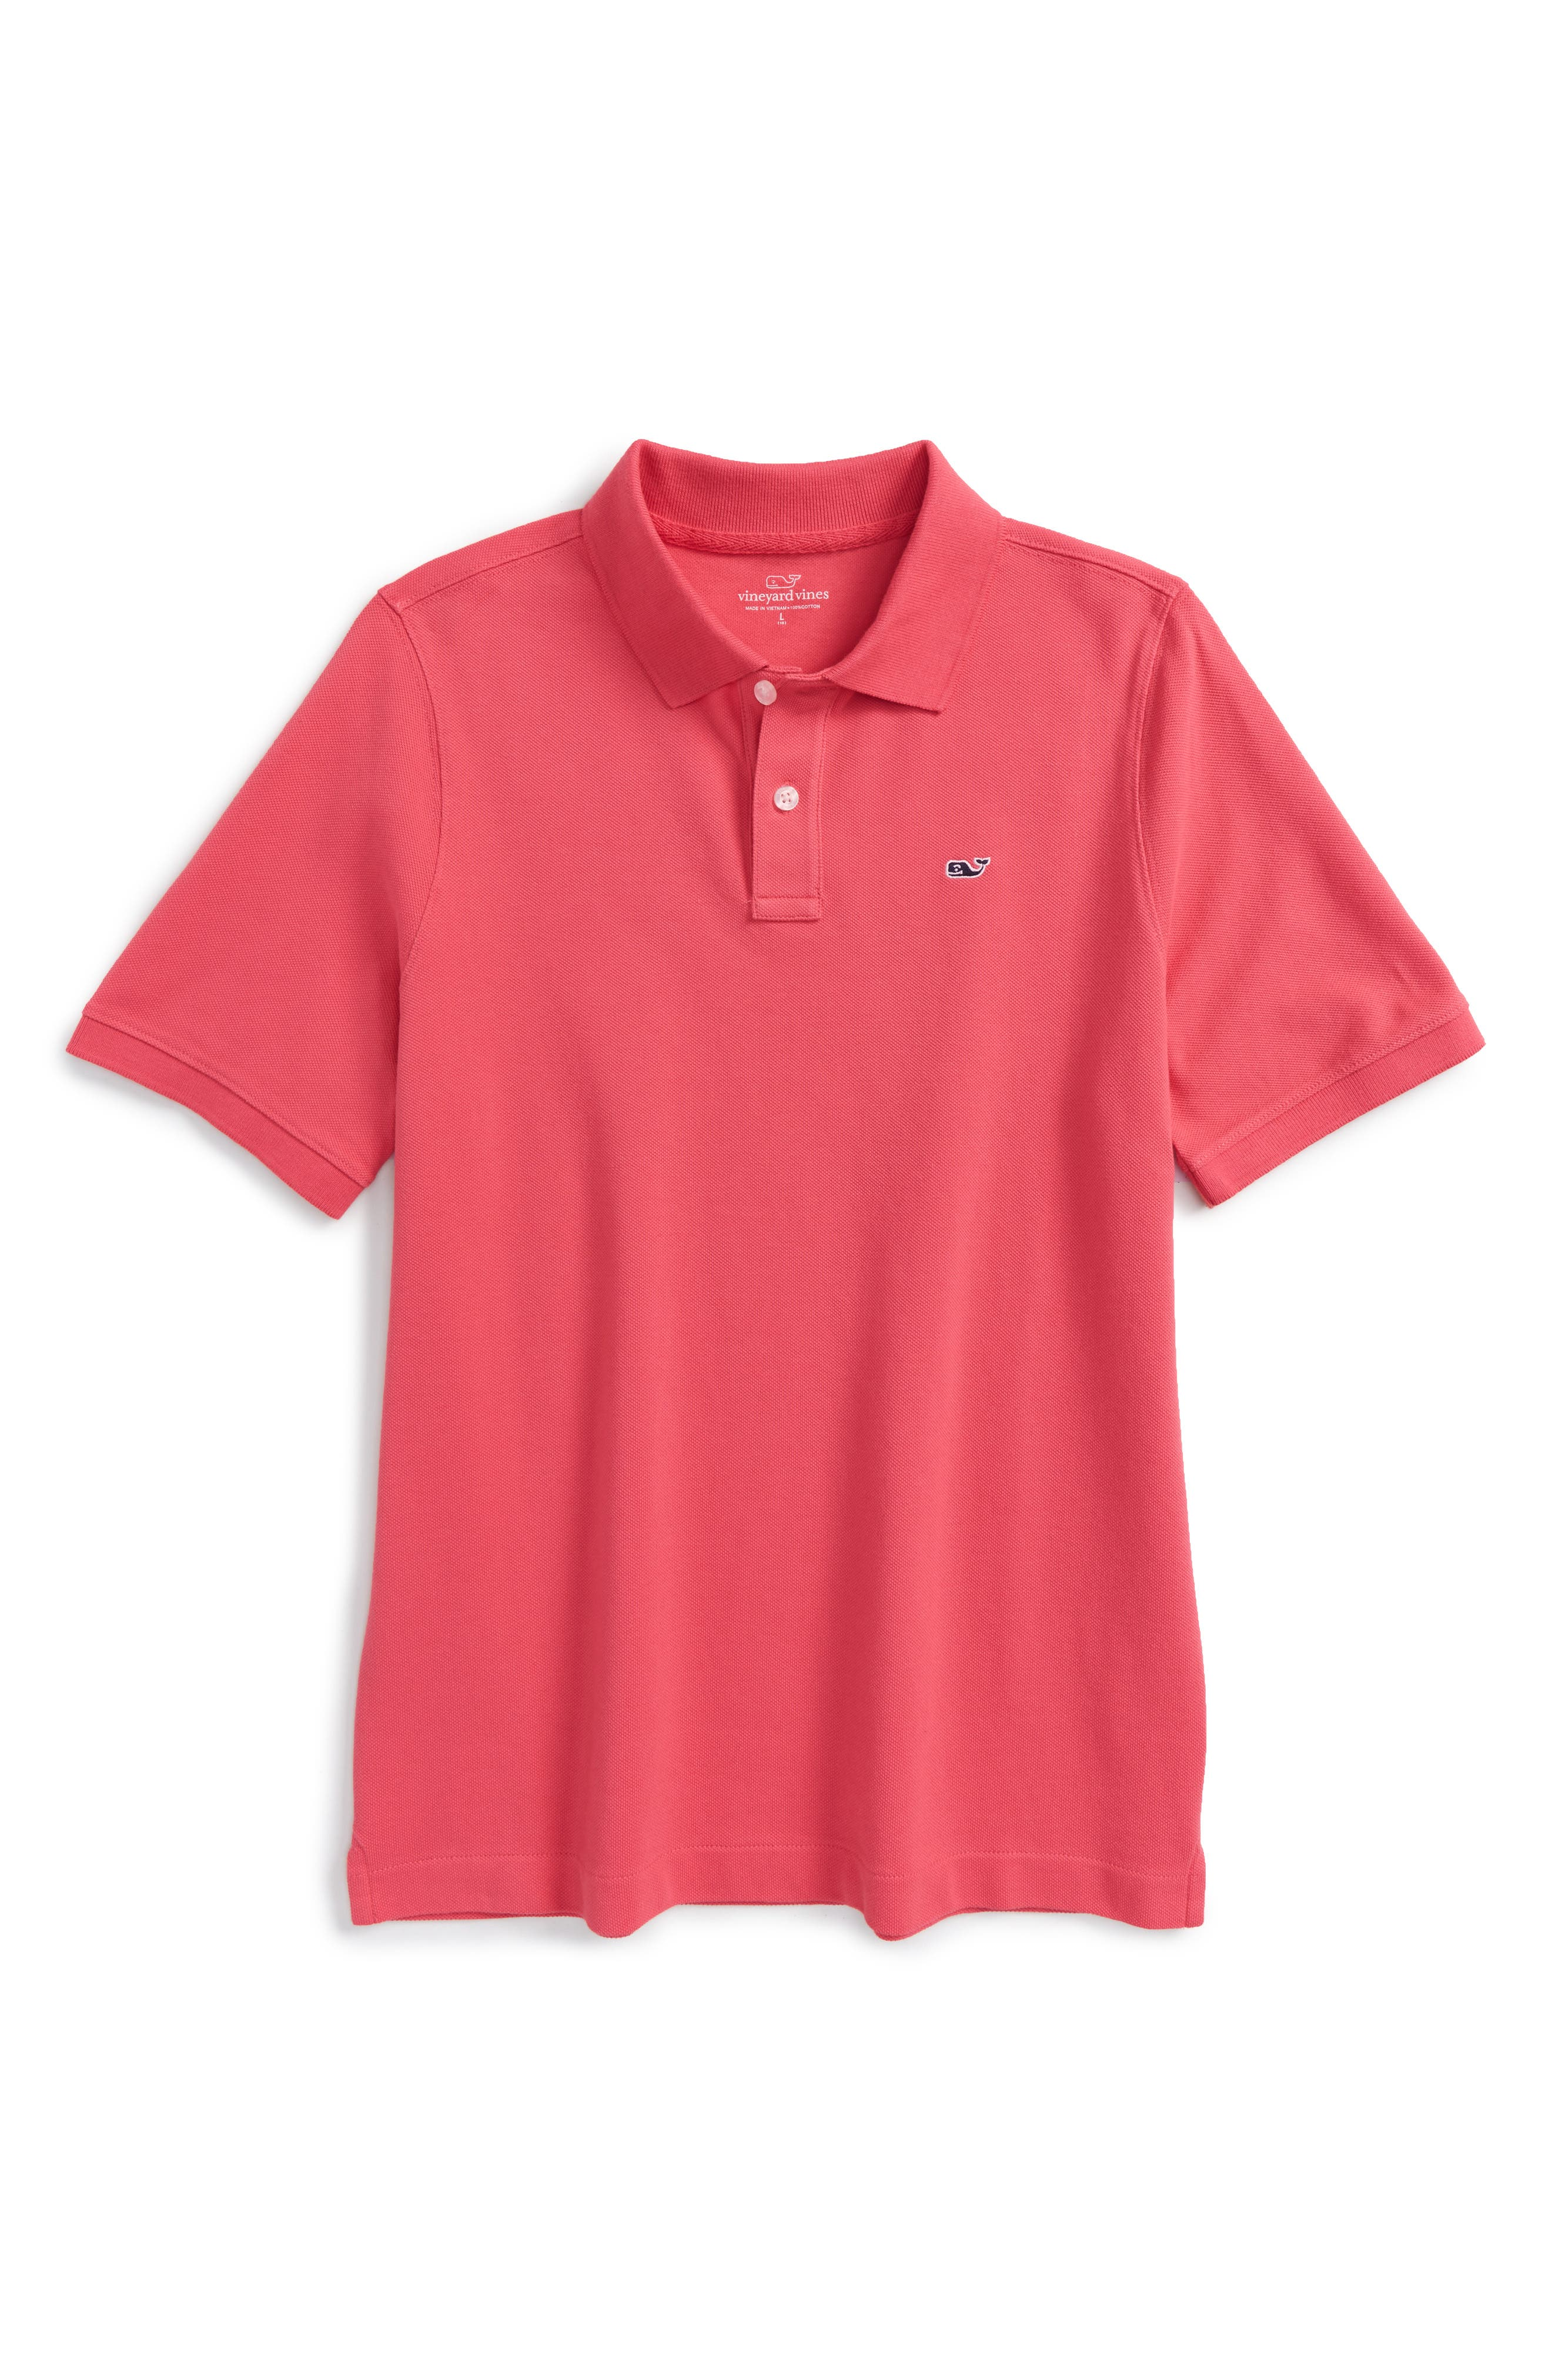 Alternate Image 1 Selected - vineyard vines Classic Piqué Cotton Polo (Toddler Boys, Little Boys & Big Boys)